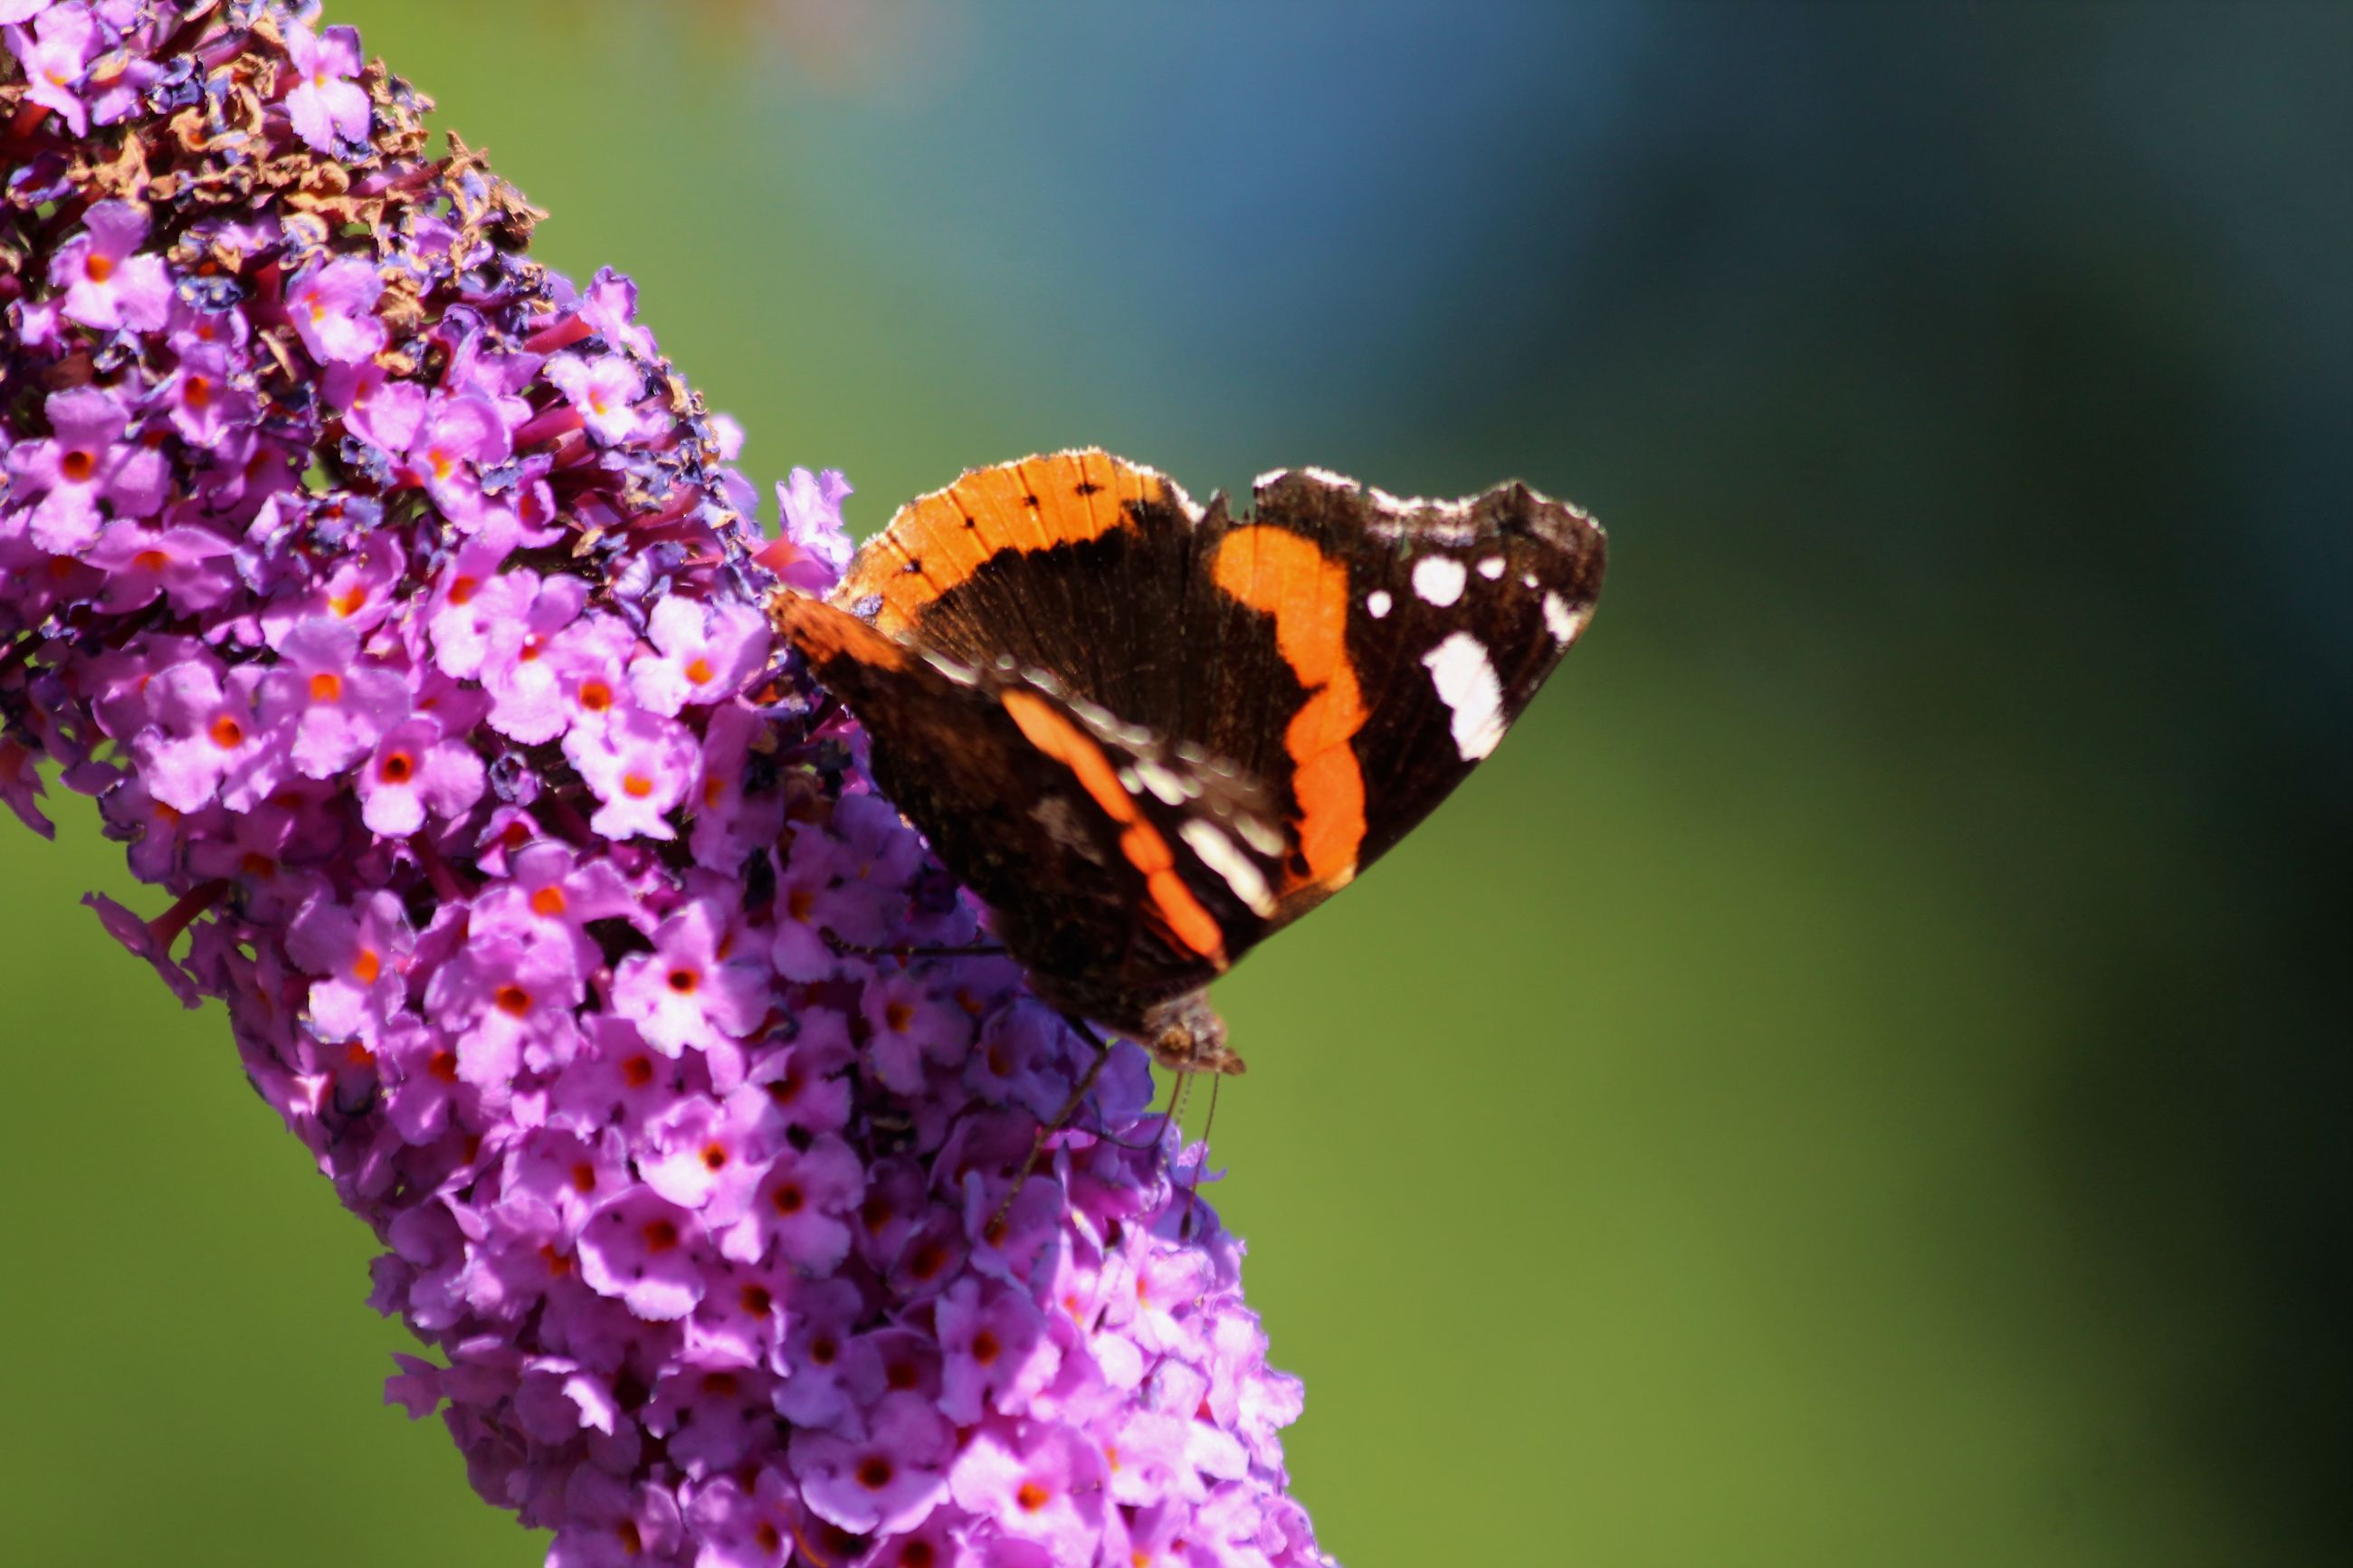 CLOSE-UP OF BUTTERFLY POLLINATING ON PURPLE